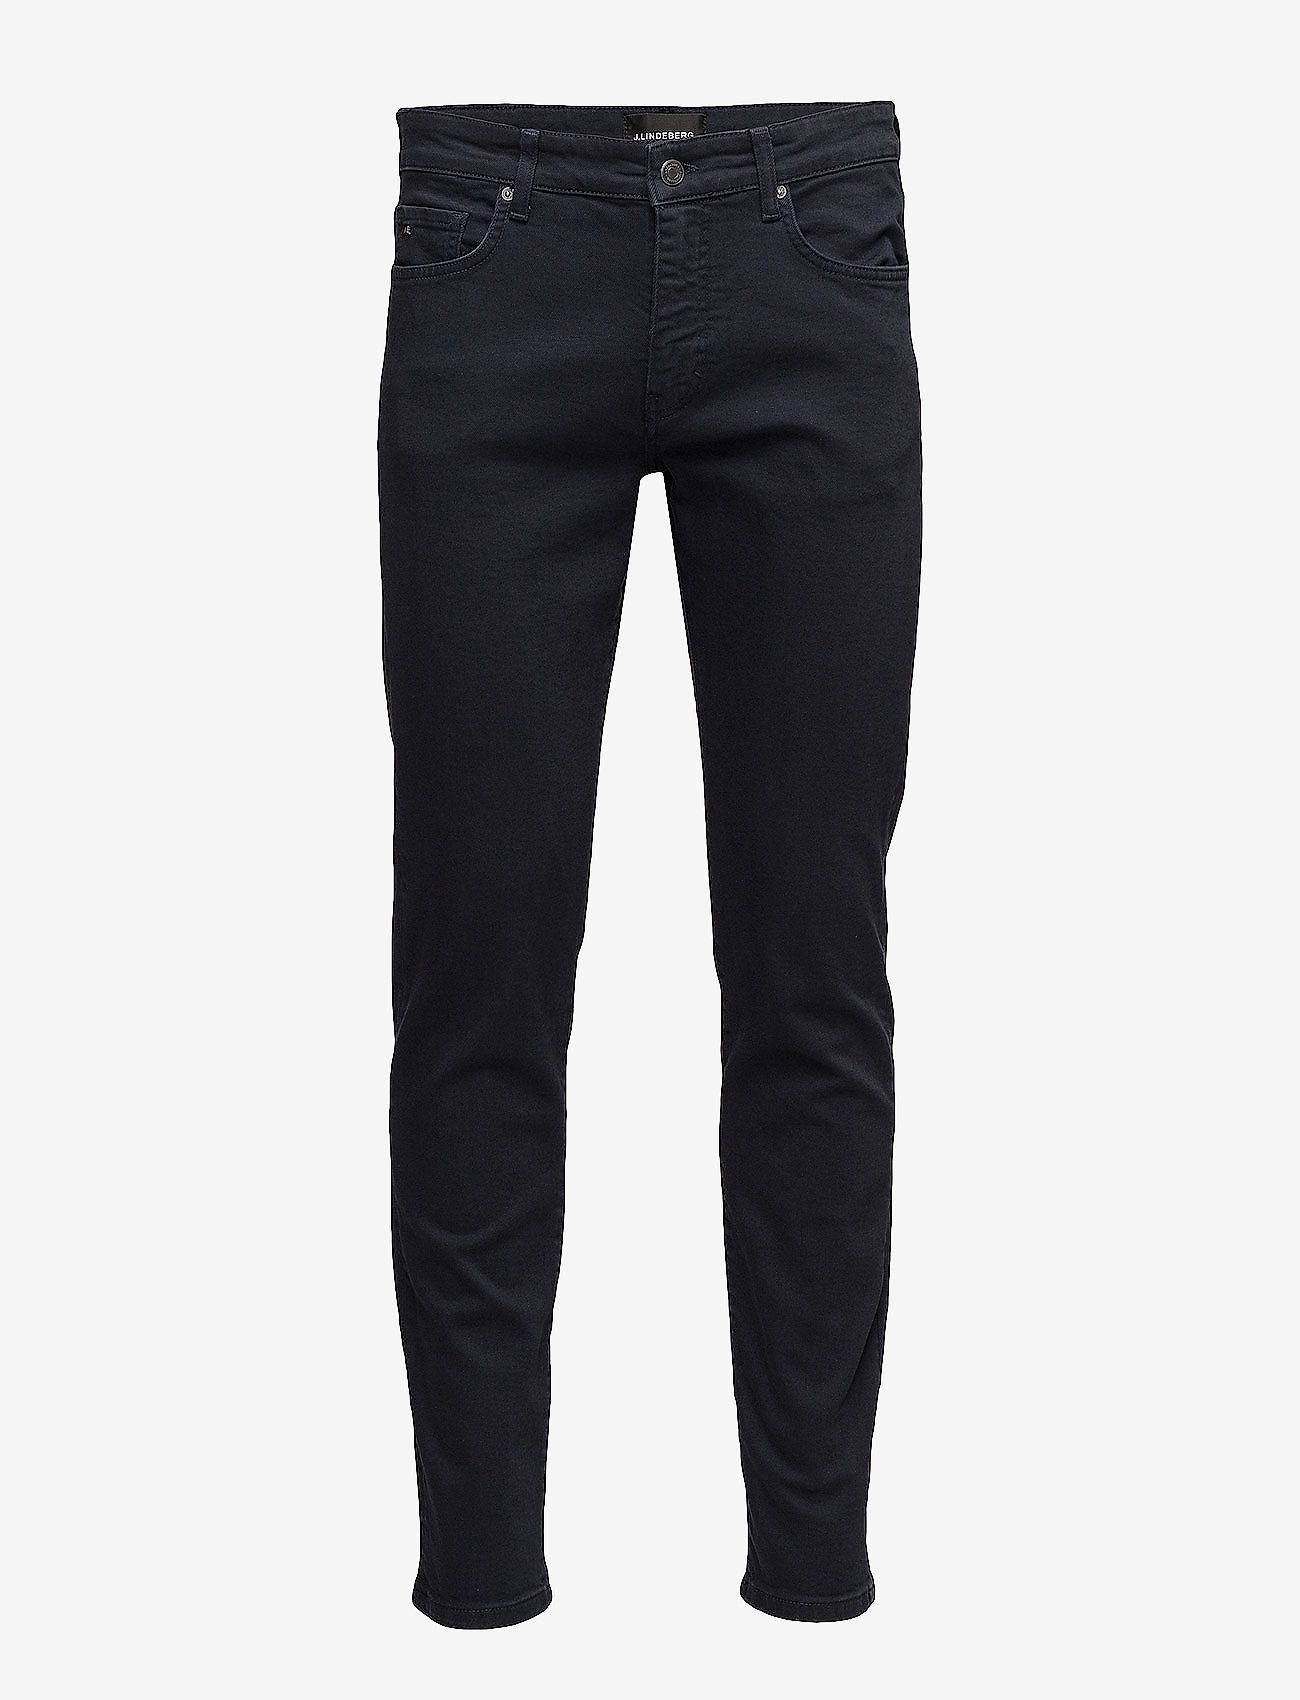 J. Lindeberg - Jay Solid Stretch - slim jeans - jl navy - 0